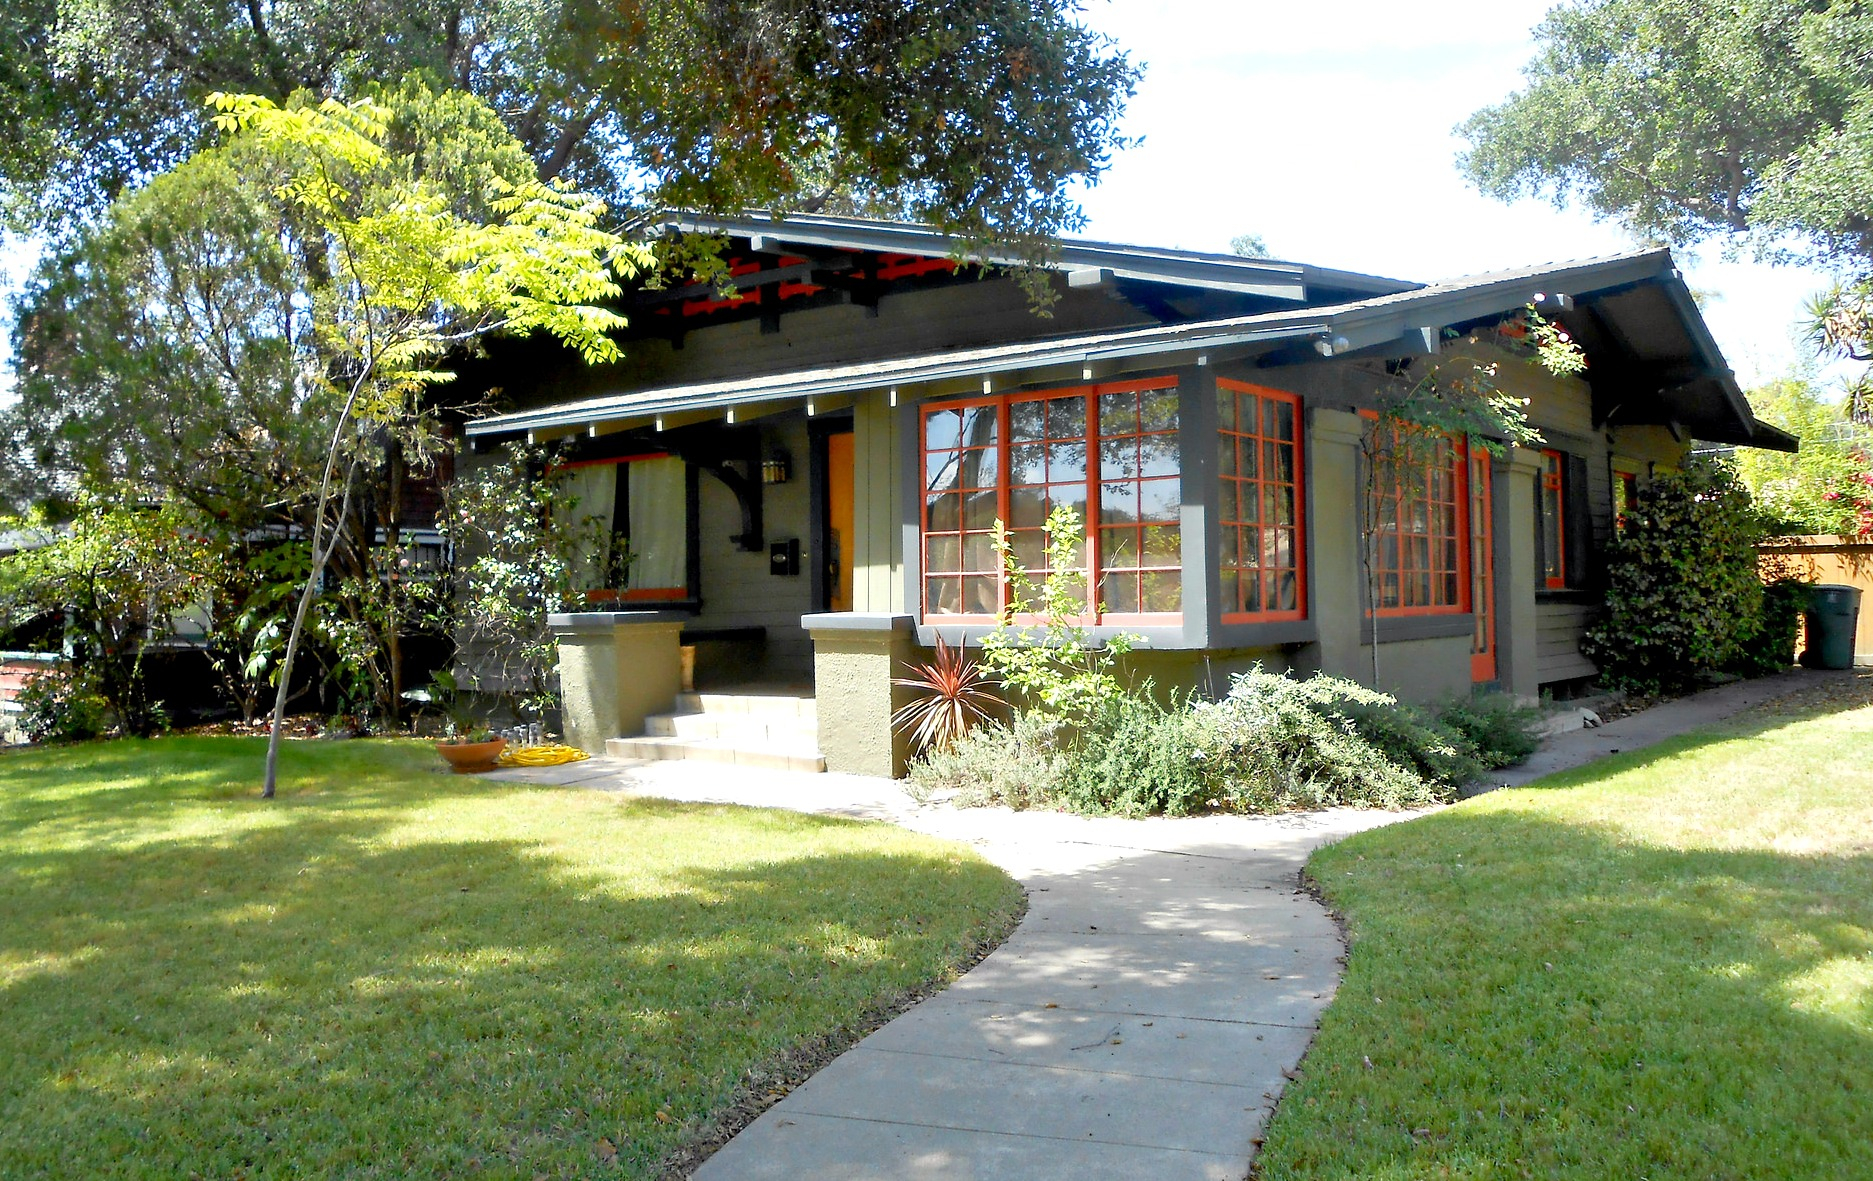 Fabulous The Craftsman Bungalow House - My Life Banquet with Bungalow Homes For Sale